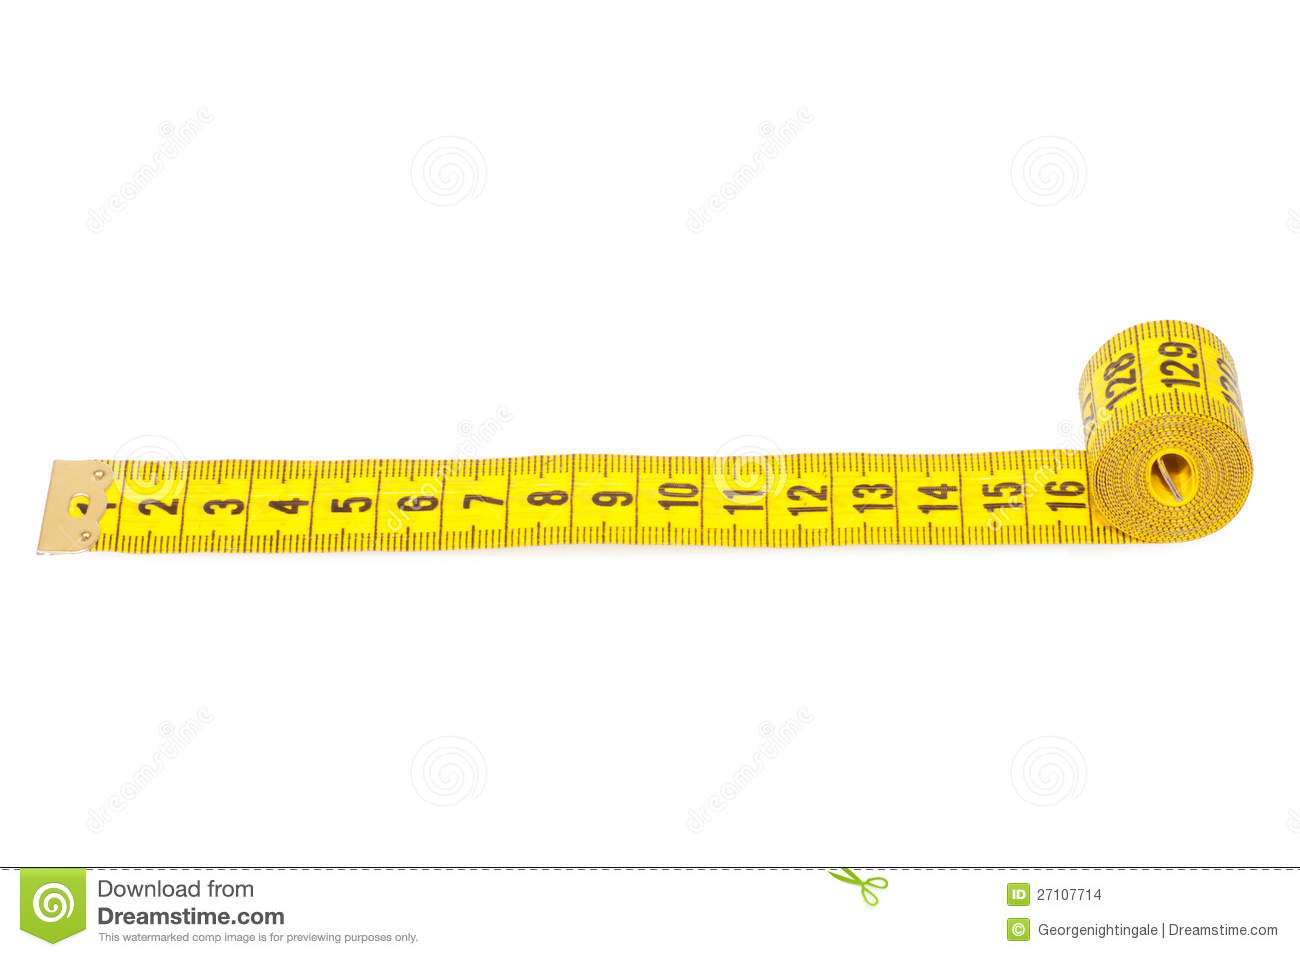 Measuring Tape Of The Tailor Stock Images - Image: 27107714